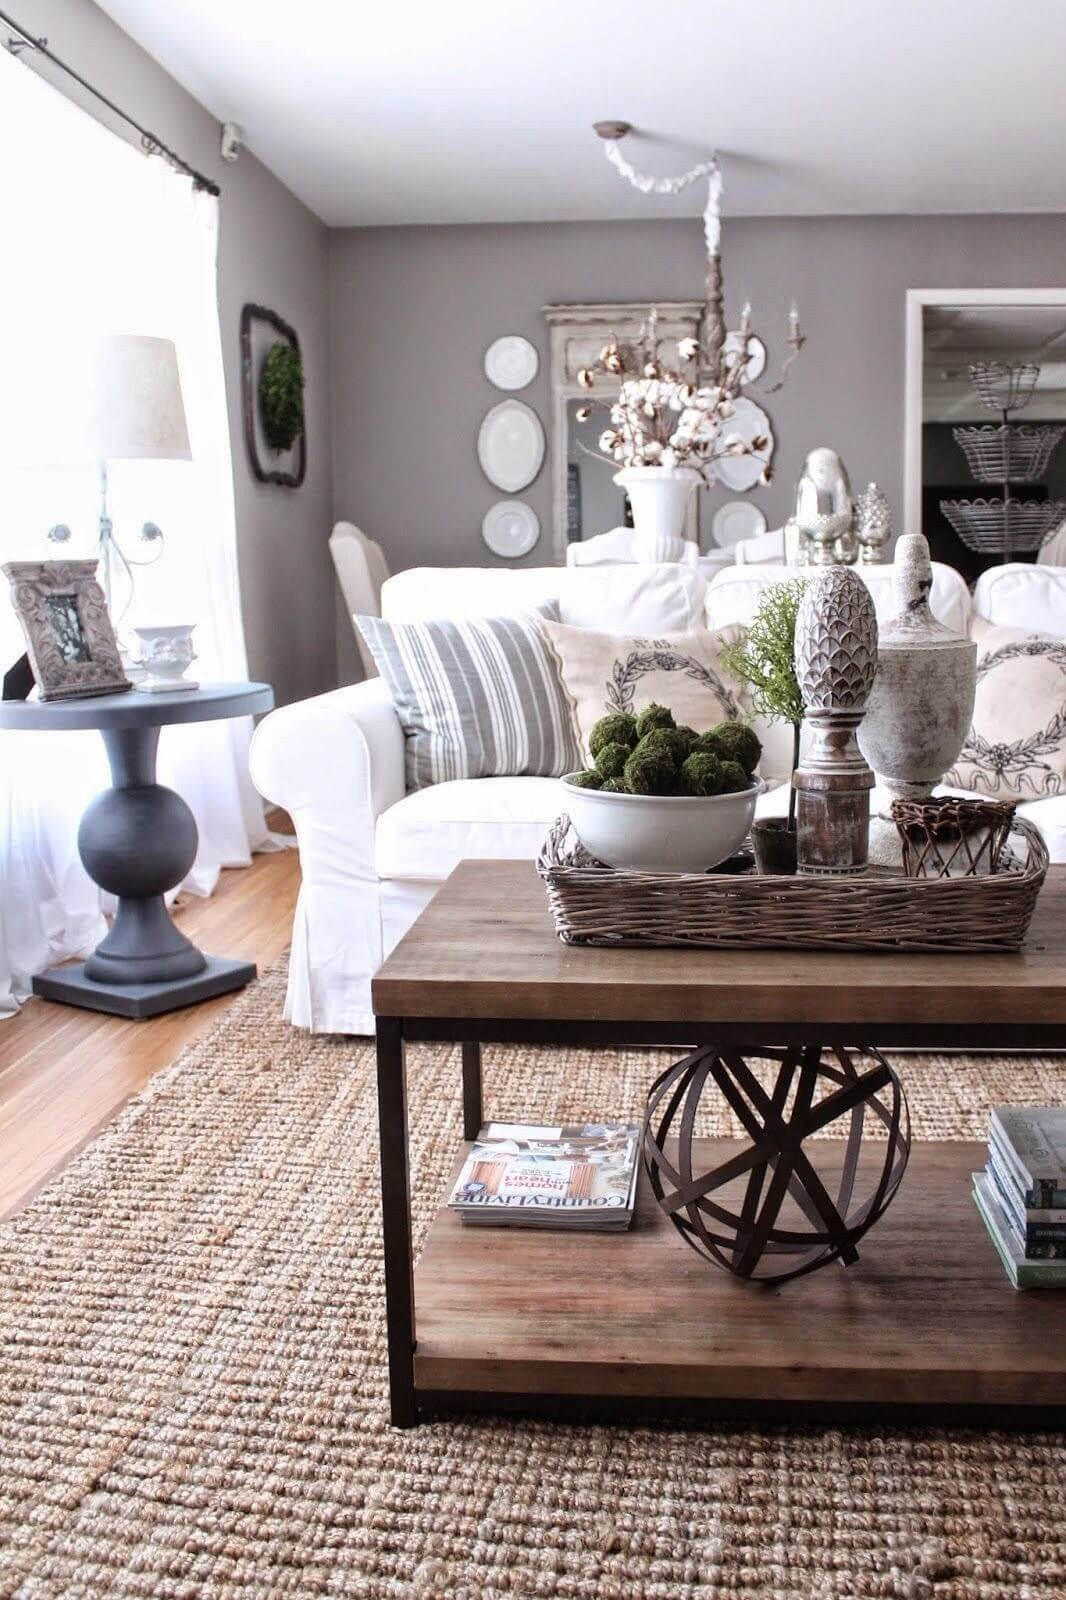 Living Room Table Decor Ideas Inspirational 37 Best Coffee Table Decorating Ideas and Designs for 2019